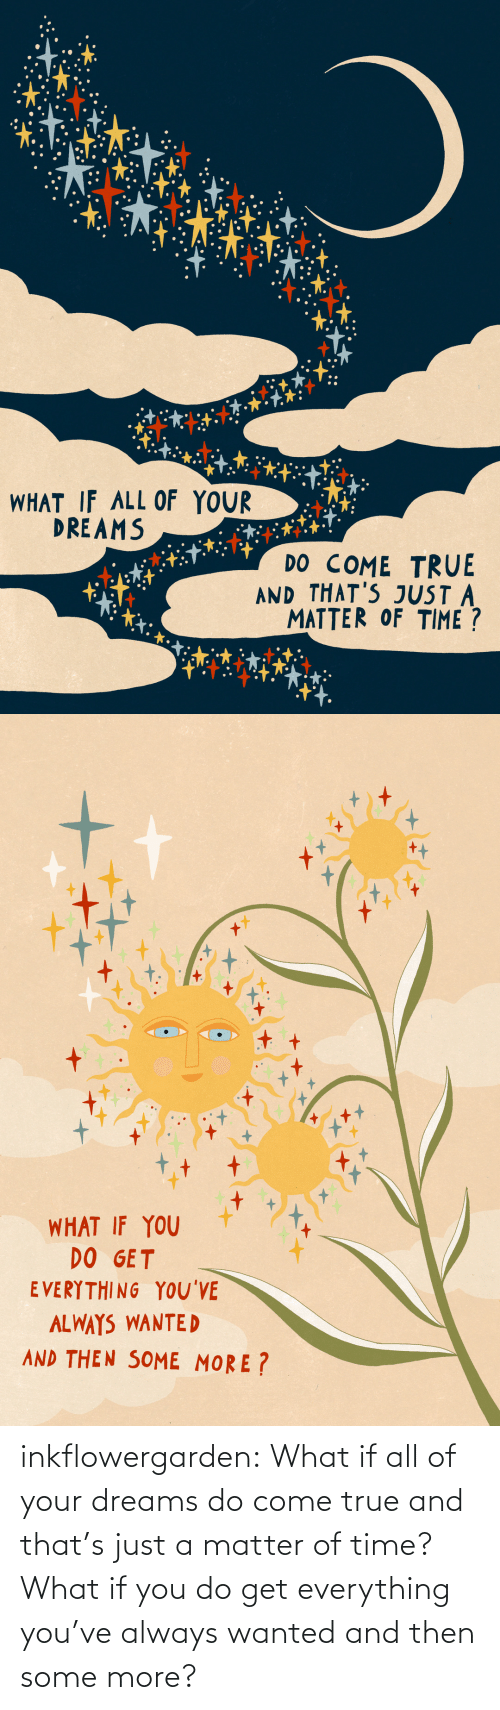 what if: inkflowergarden: What if all of your dreams do come true and that's just a matter of time? What if you do get everything you've always wanted and then some more?